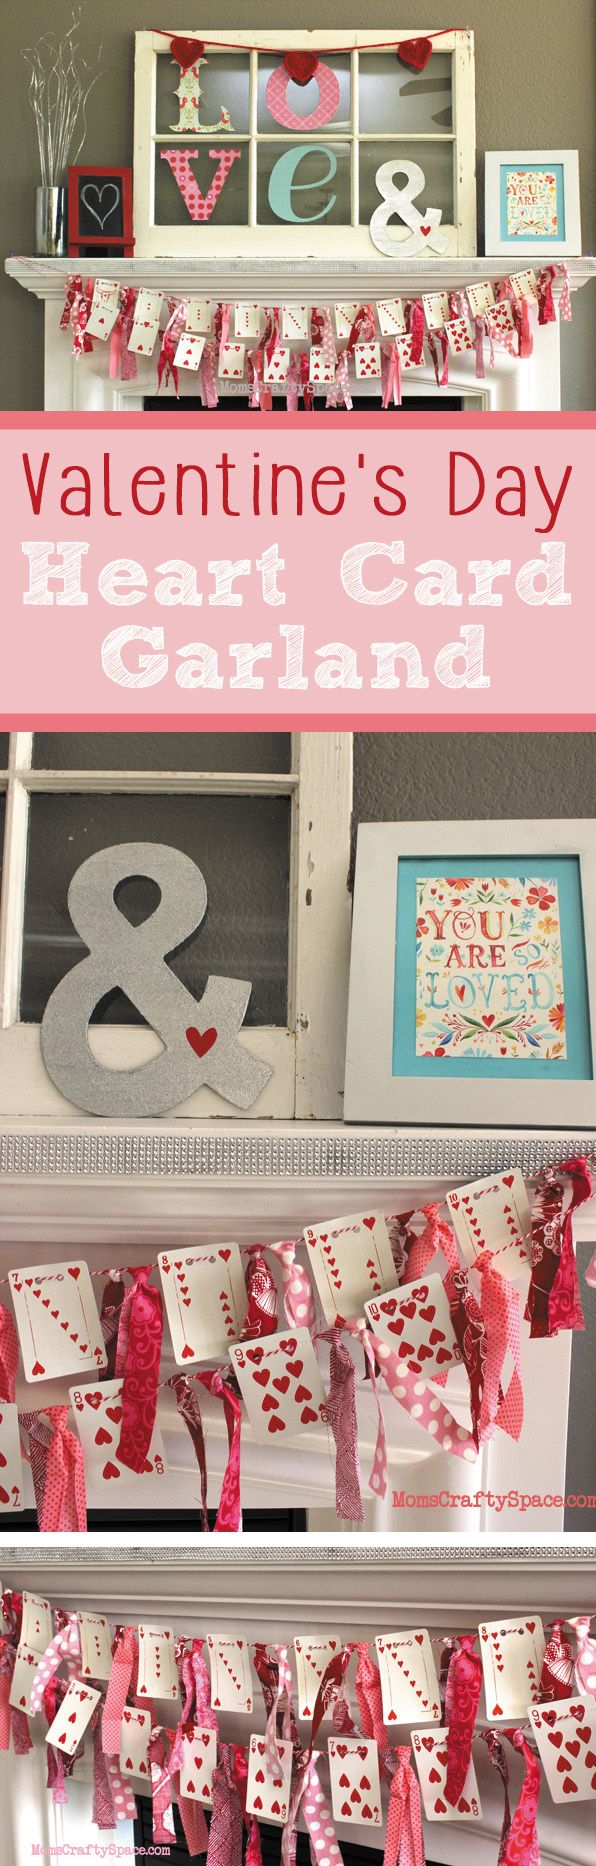 Pull the hearts out of a deck of cards, hole punch them and string them on a red and white baker's twine to hang up as a piece of lovely Valentine's décor. Happiness Is Homemade also suggests adding pieces of pink, red, heart and white polka dot ribbon to add the finishing touch to the garland.